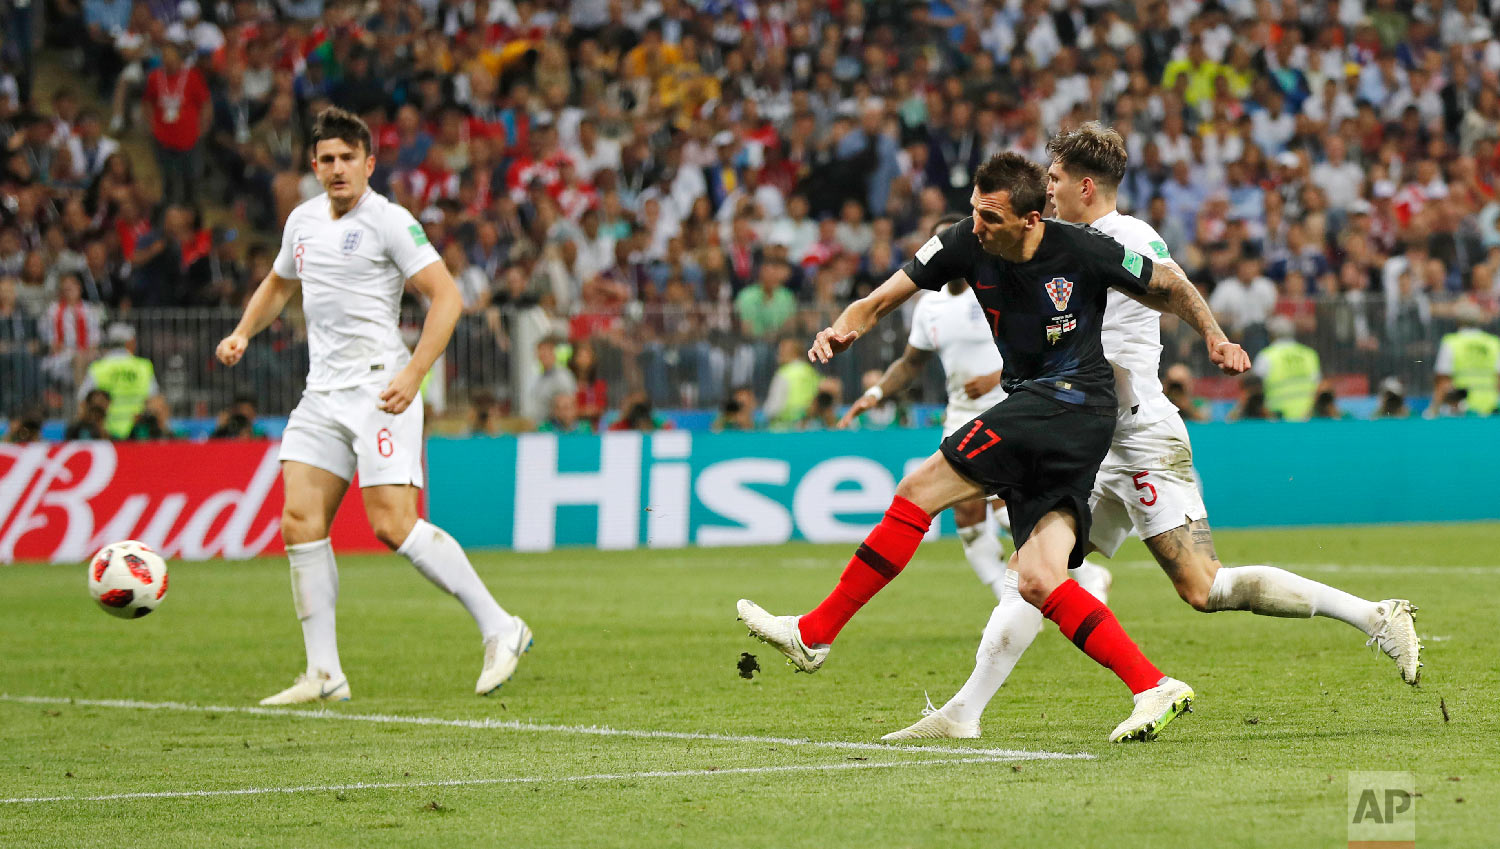 Croatia's Mario Mandzukic, second right, scores his side's second goal during the semifinal match between Croatia and England at the 2018 soccer World Cup in the Luzhniki Stadium in Moscow, Russia, Wednesday, July 11, 2018. (AP Photo/Frank Augstein)